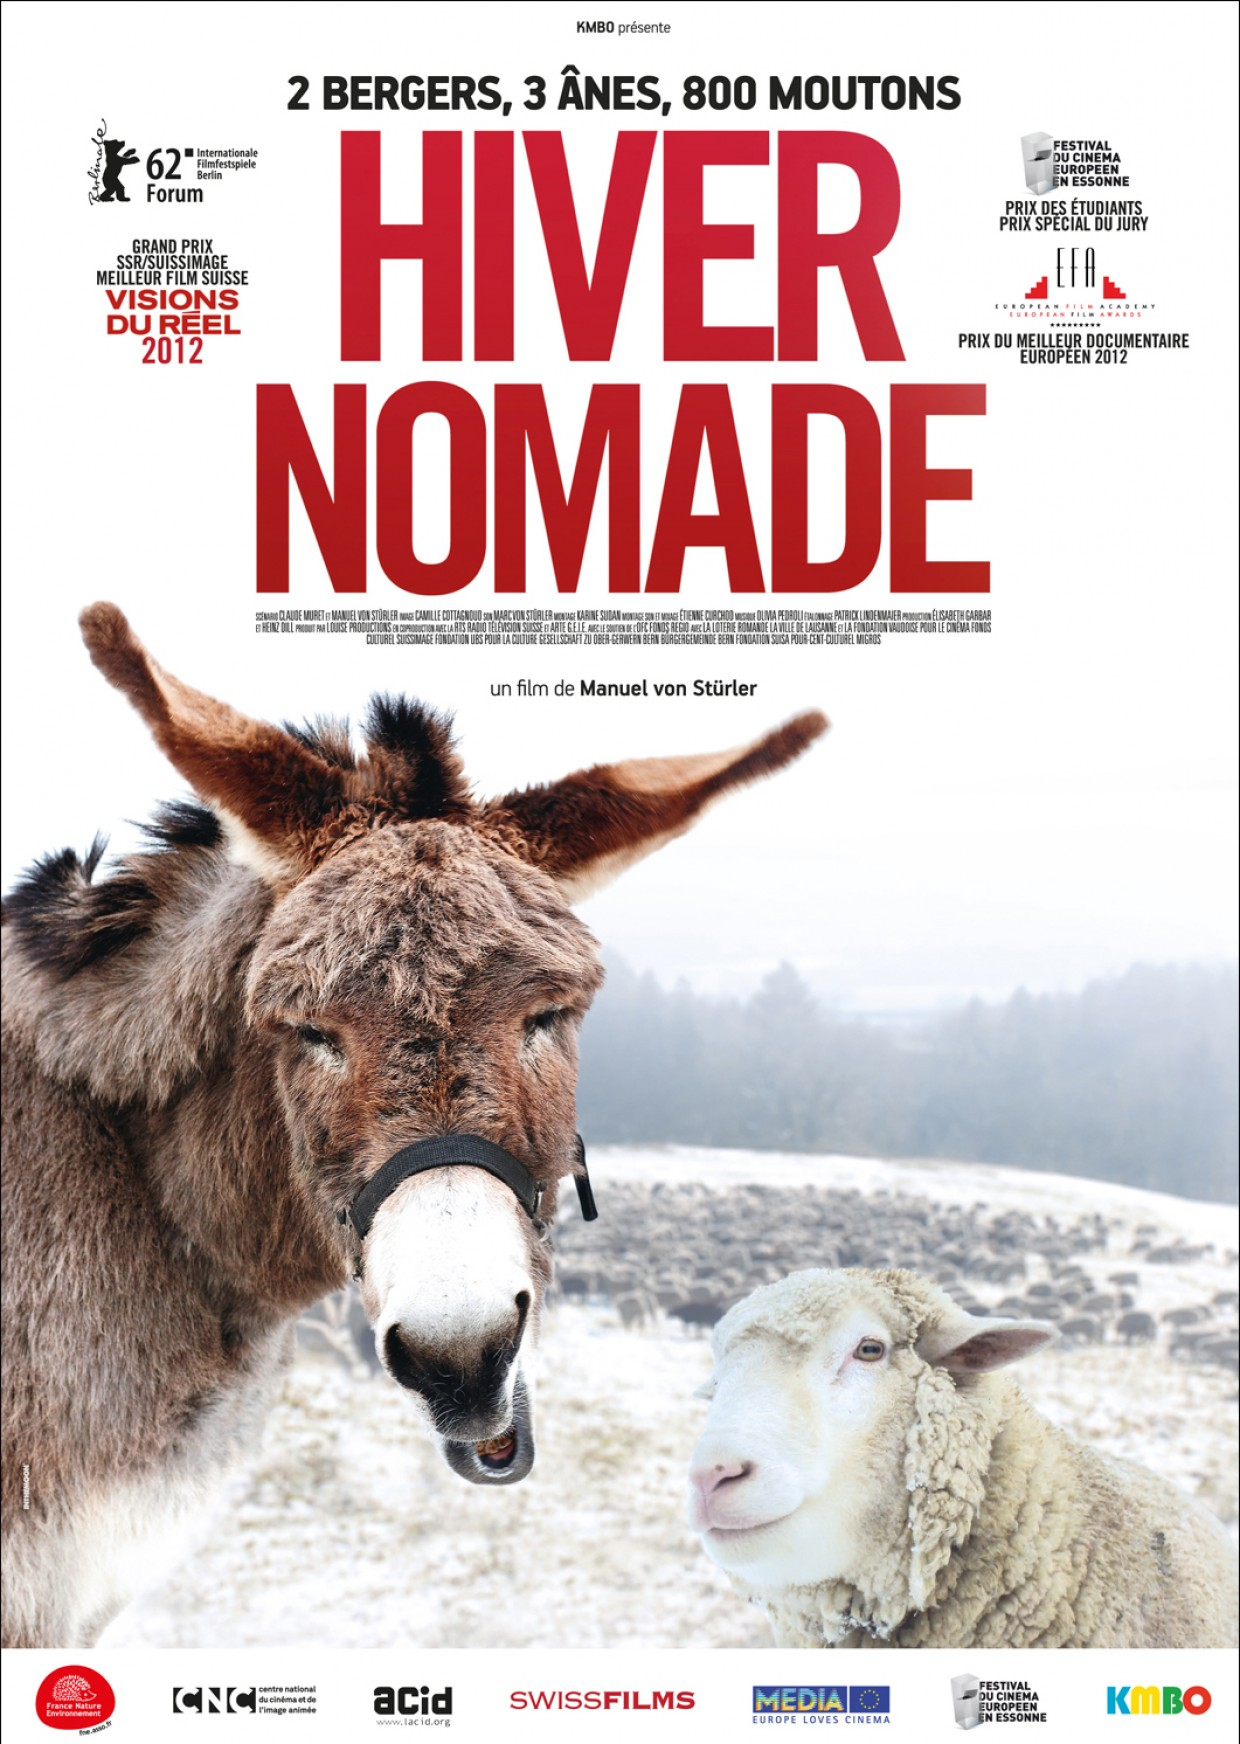 PROJECTION «HIVER NOMADE» JEUDI 24 MARS A 20H